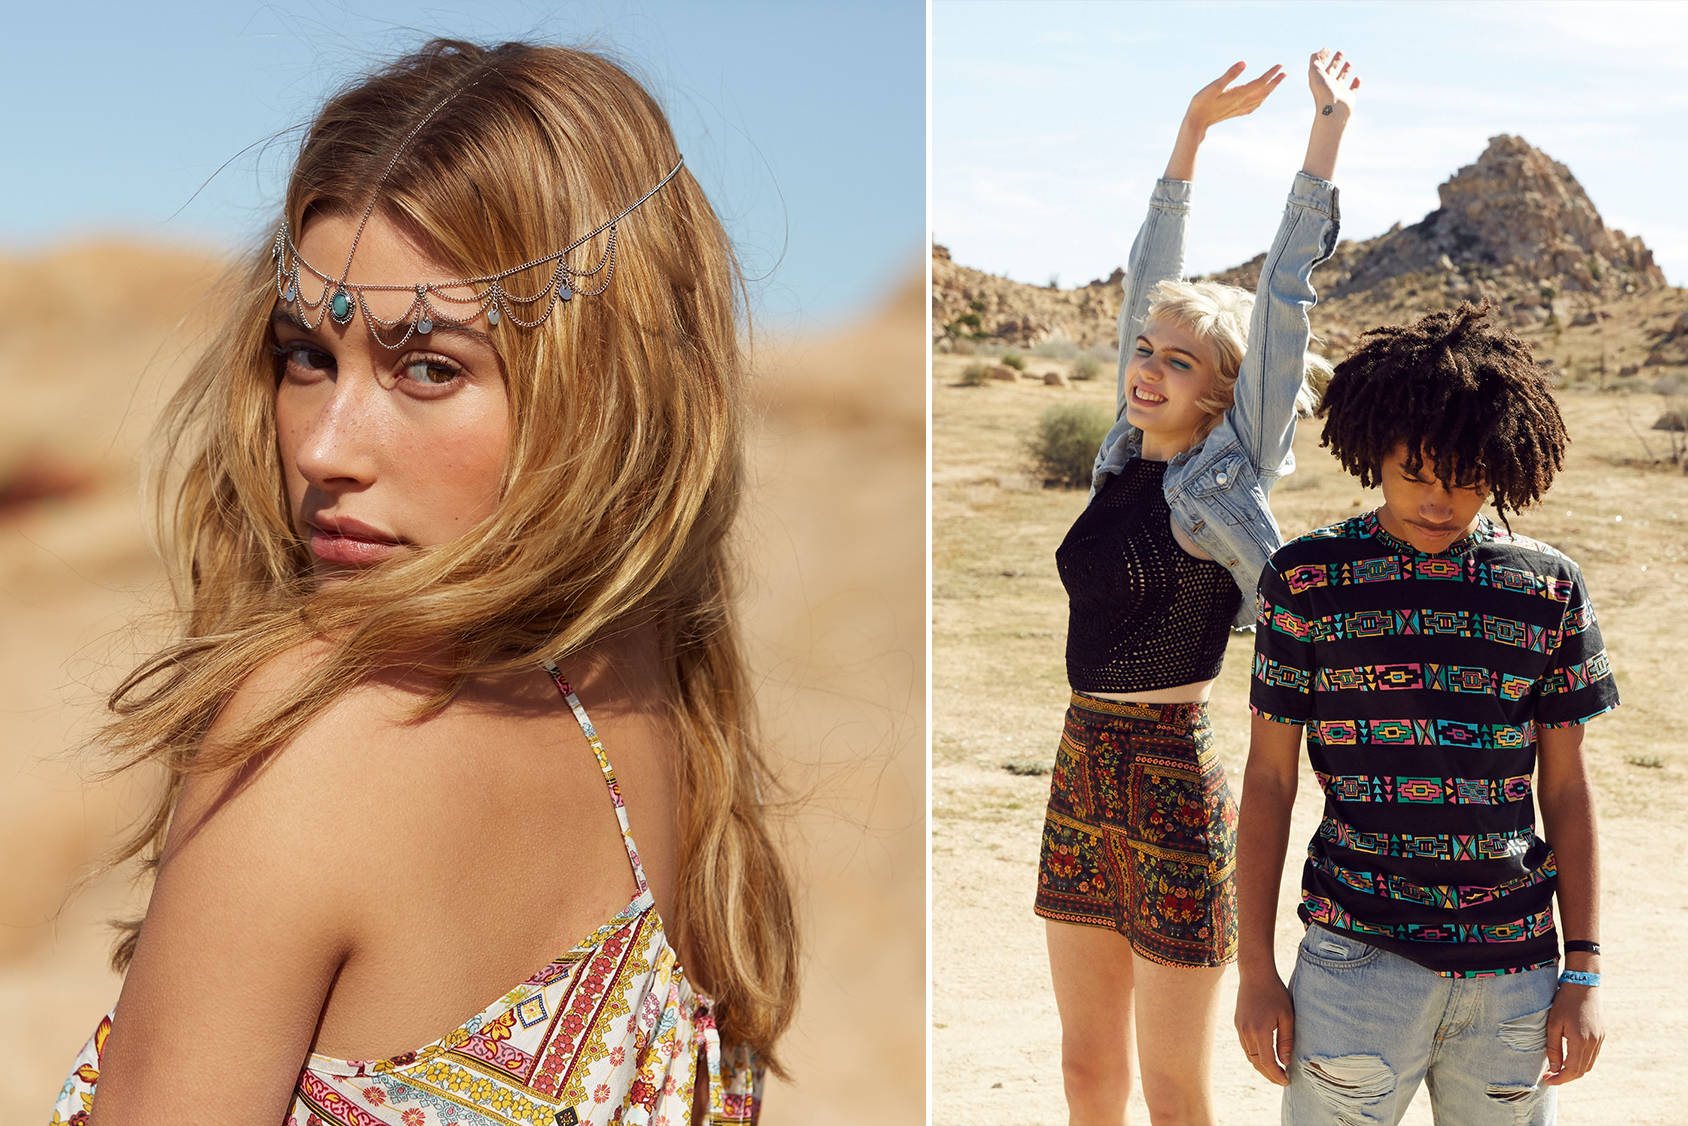 The #HMLovesCoachella collection launches on March 24 in the US, and globally on March 31.